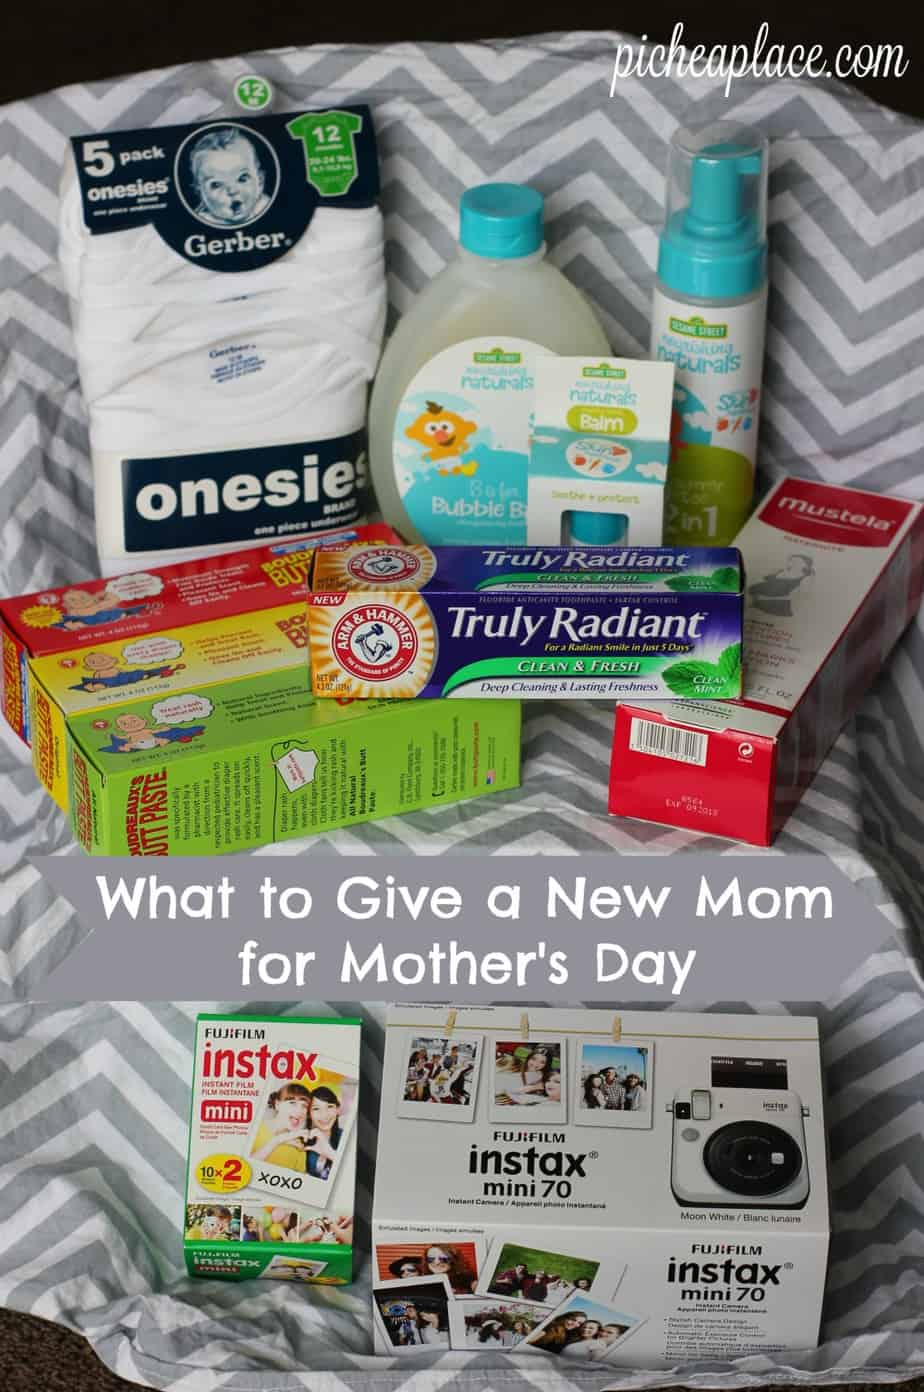 Best Christmas Gifts For New Moms Part - 35: Looking For Motheru0027s Day Gift Ideas For A New Mom? Here Are Some Great Fun